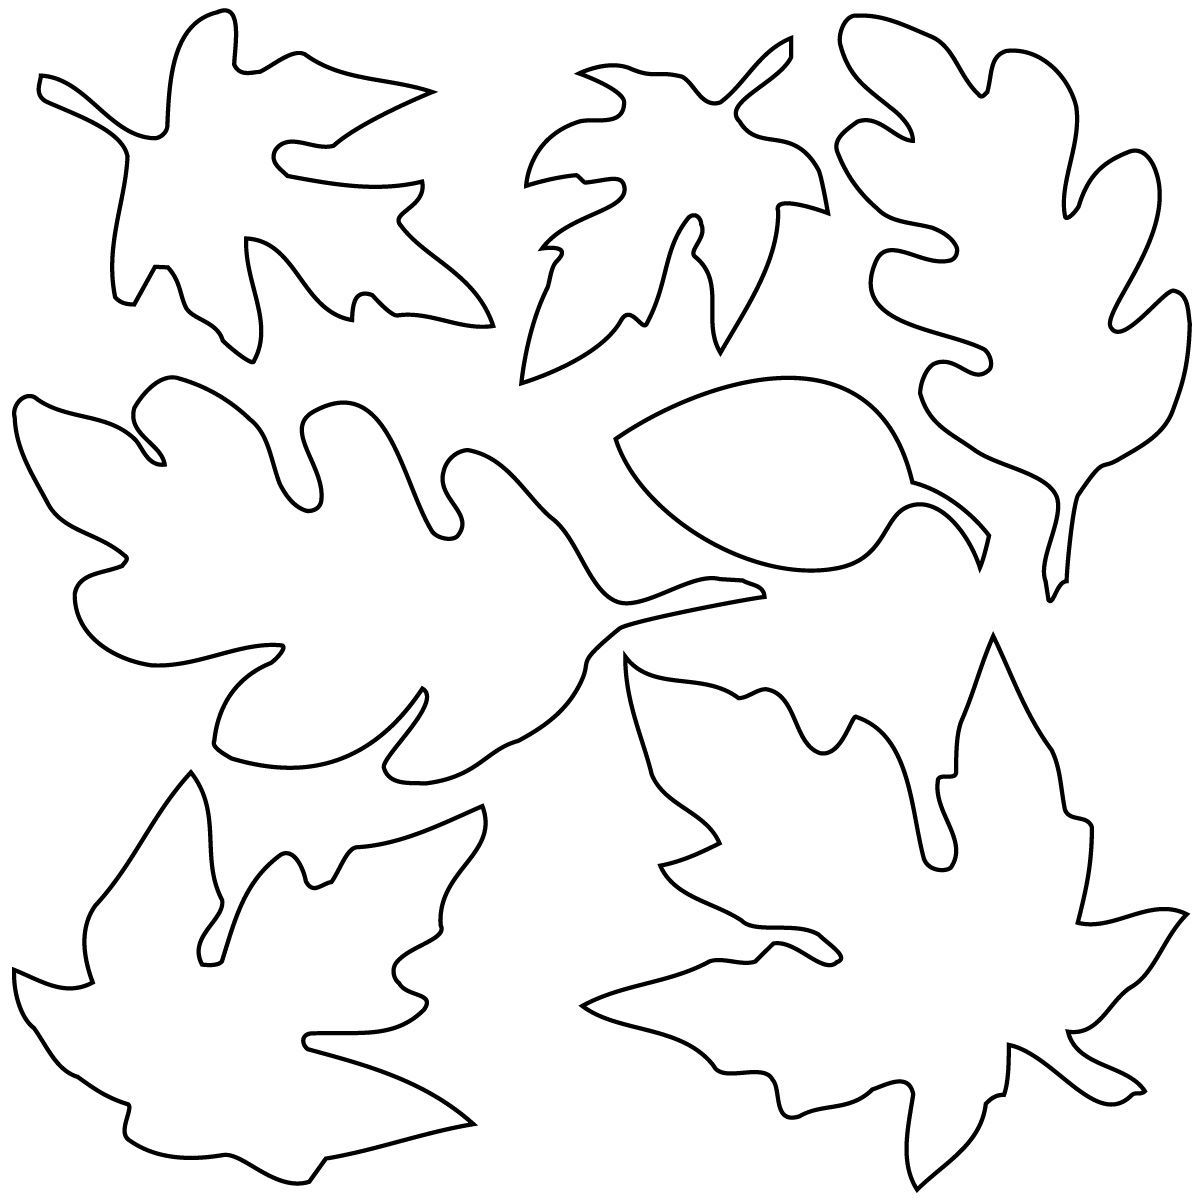 Related Leaf Coloring Pages item-13080, Leaf Coloring Pages Fall ...